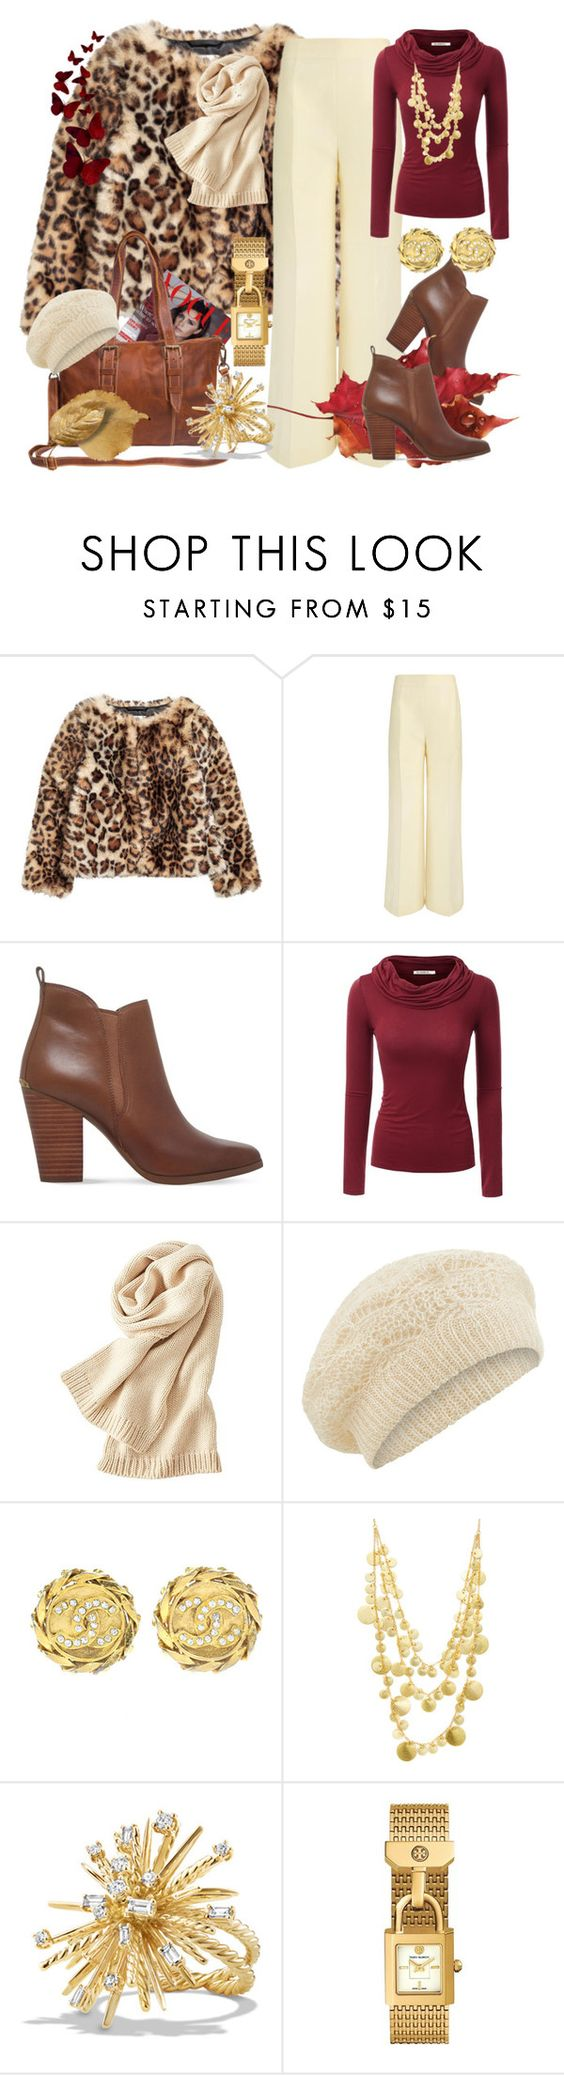 """GIVEAWAY WITH MAHI Leather"" by patkova-v ❤ liked on Polyvore featuring Victoria Beckham, MICHAEL Michael Kors, Doublju, Uniqlo, Accessorize, Chanel, Ashiana, David Yurman and Tory Burch"